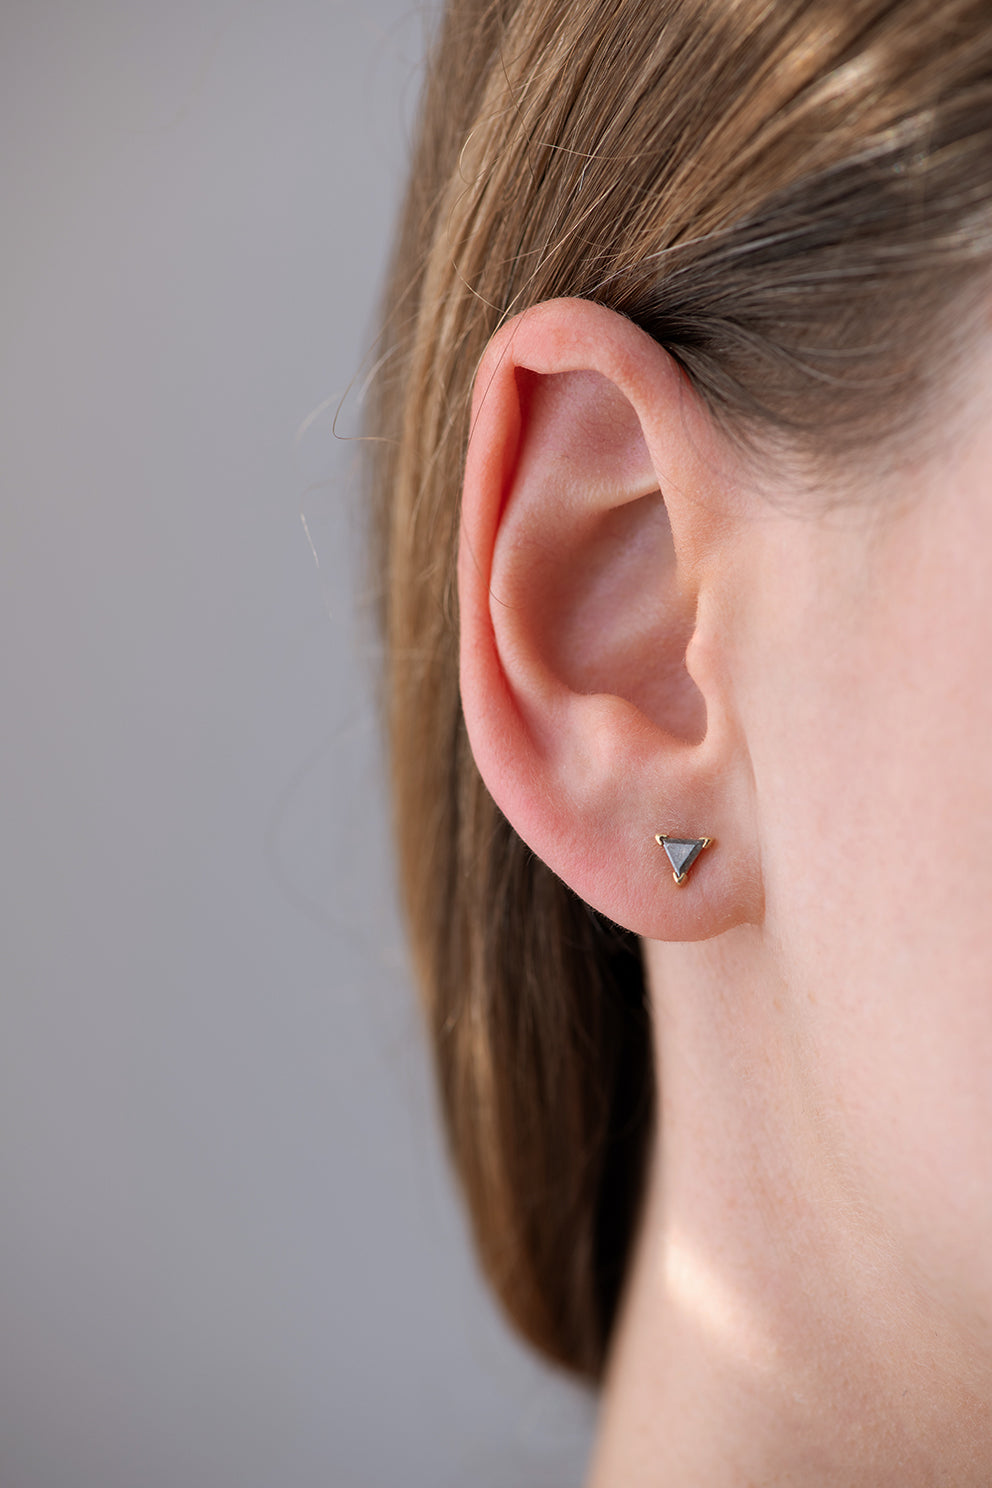 Grey Triangle Diamond Stud Earrings Front View on Ear